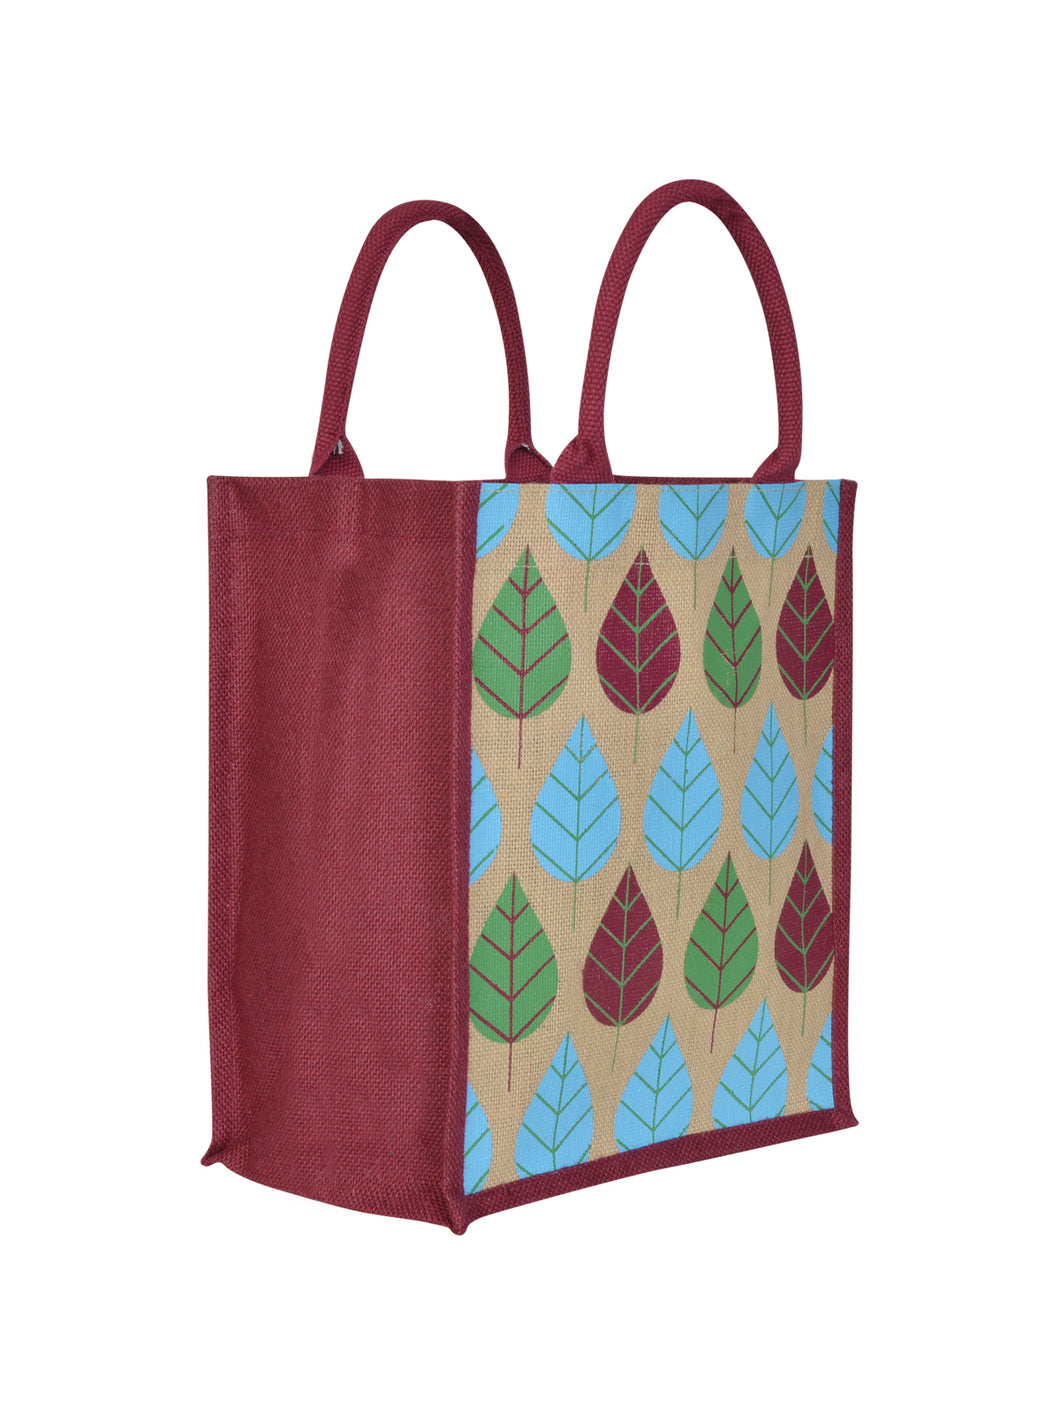 13X11 FRONT POCKET LEAF PRINT (B-166-MAROON/NATURAL)